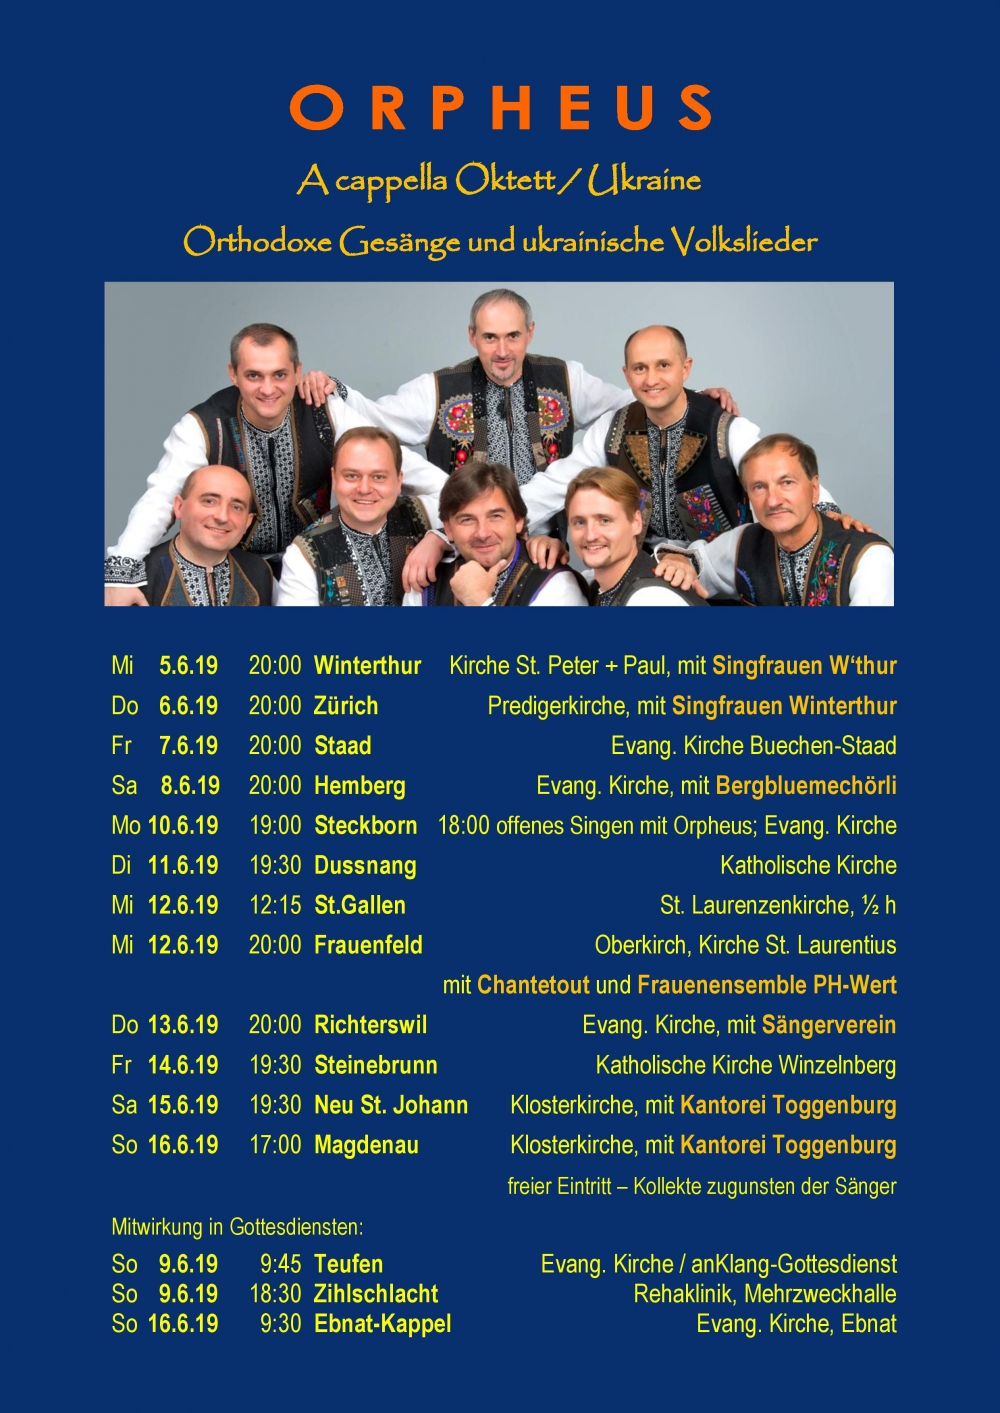 ORPHEUS SWISS TOUR 2019